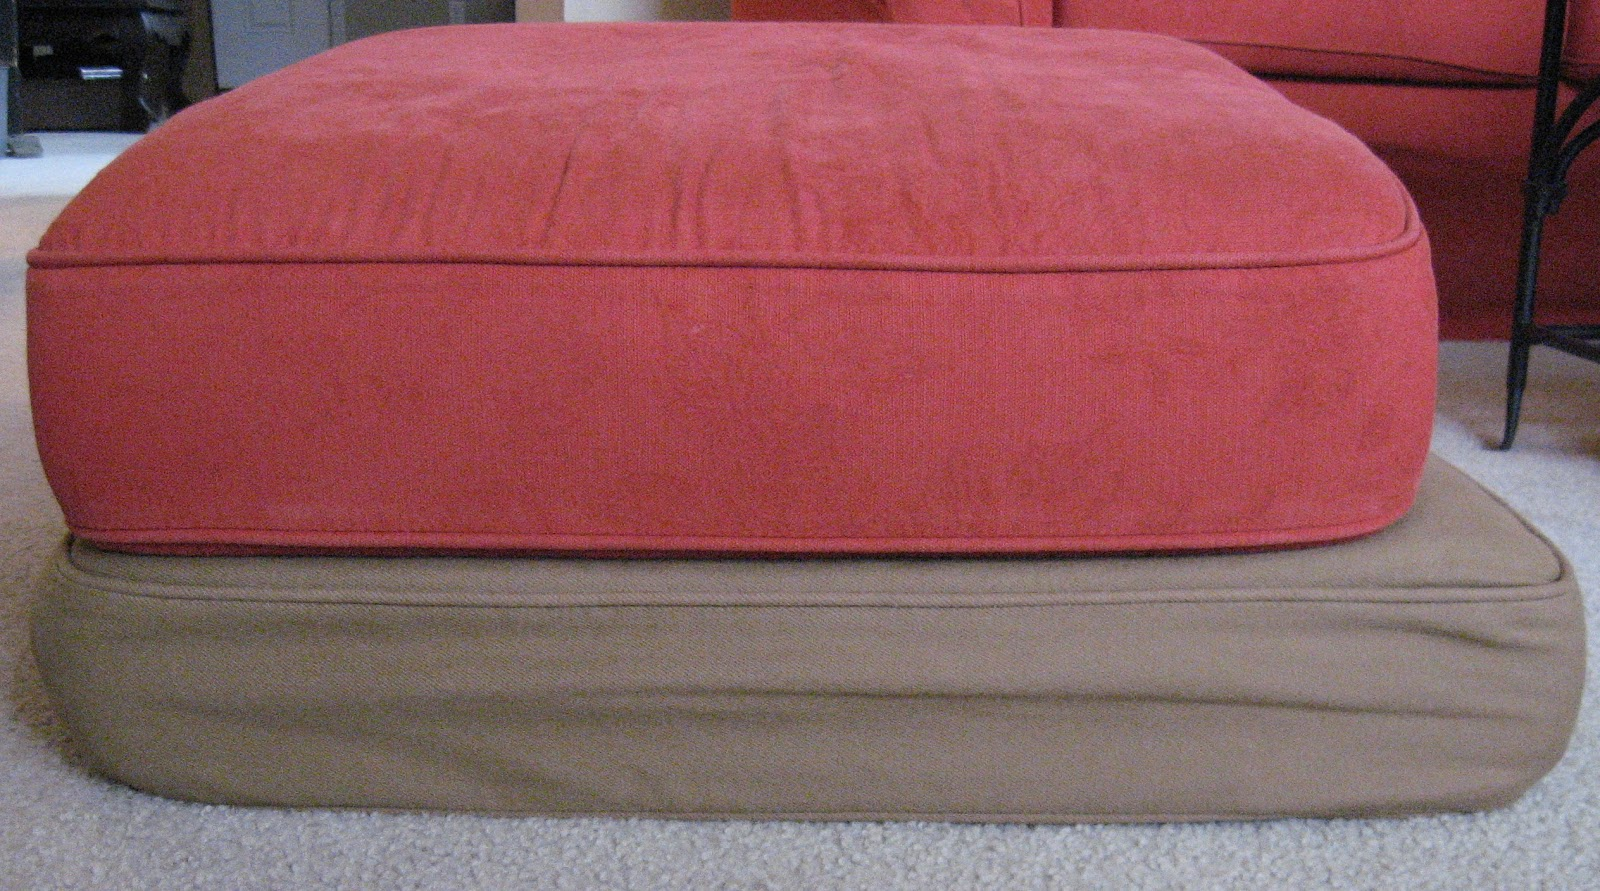 Couch covers for couches with pillow backs home improvement for Sofa back cushion covers